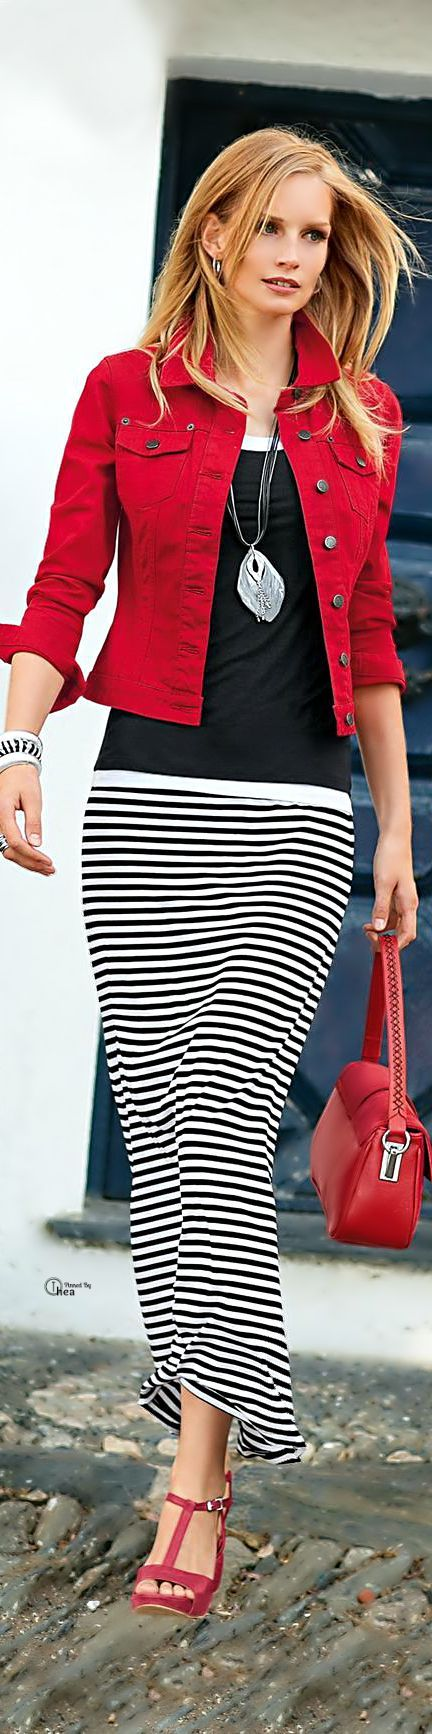 Super cute outfit. Red jacket, black top, black & white striped skirt, red bag & shoes